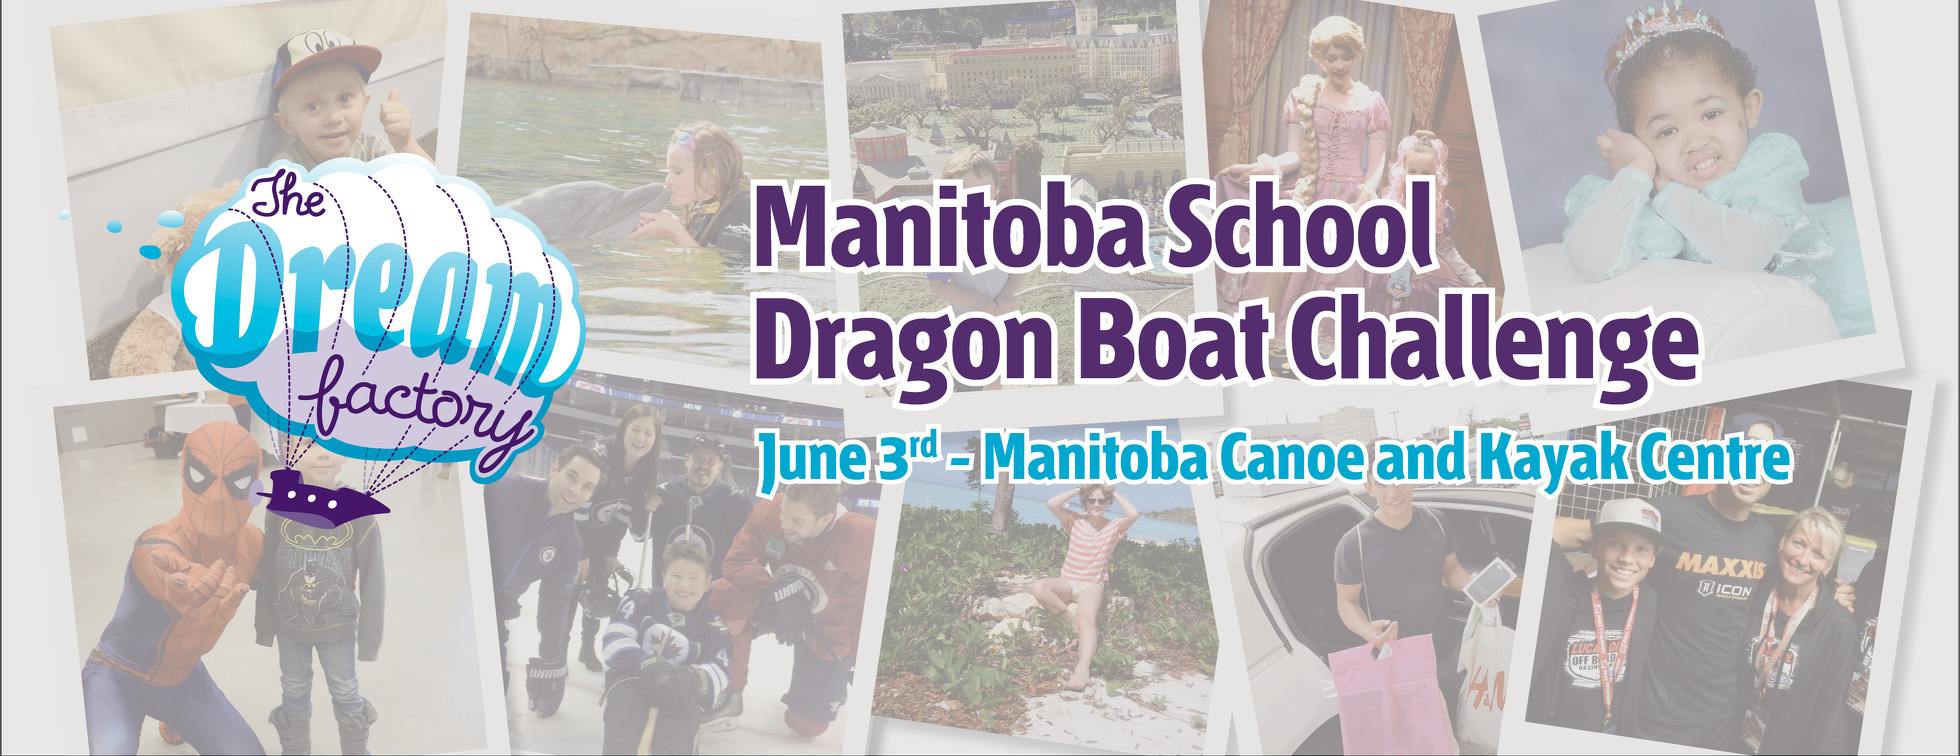 The Dream Factory Manitoba School Dragon Boat Challenge